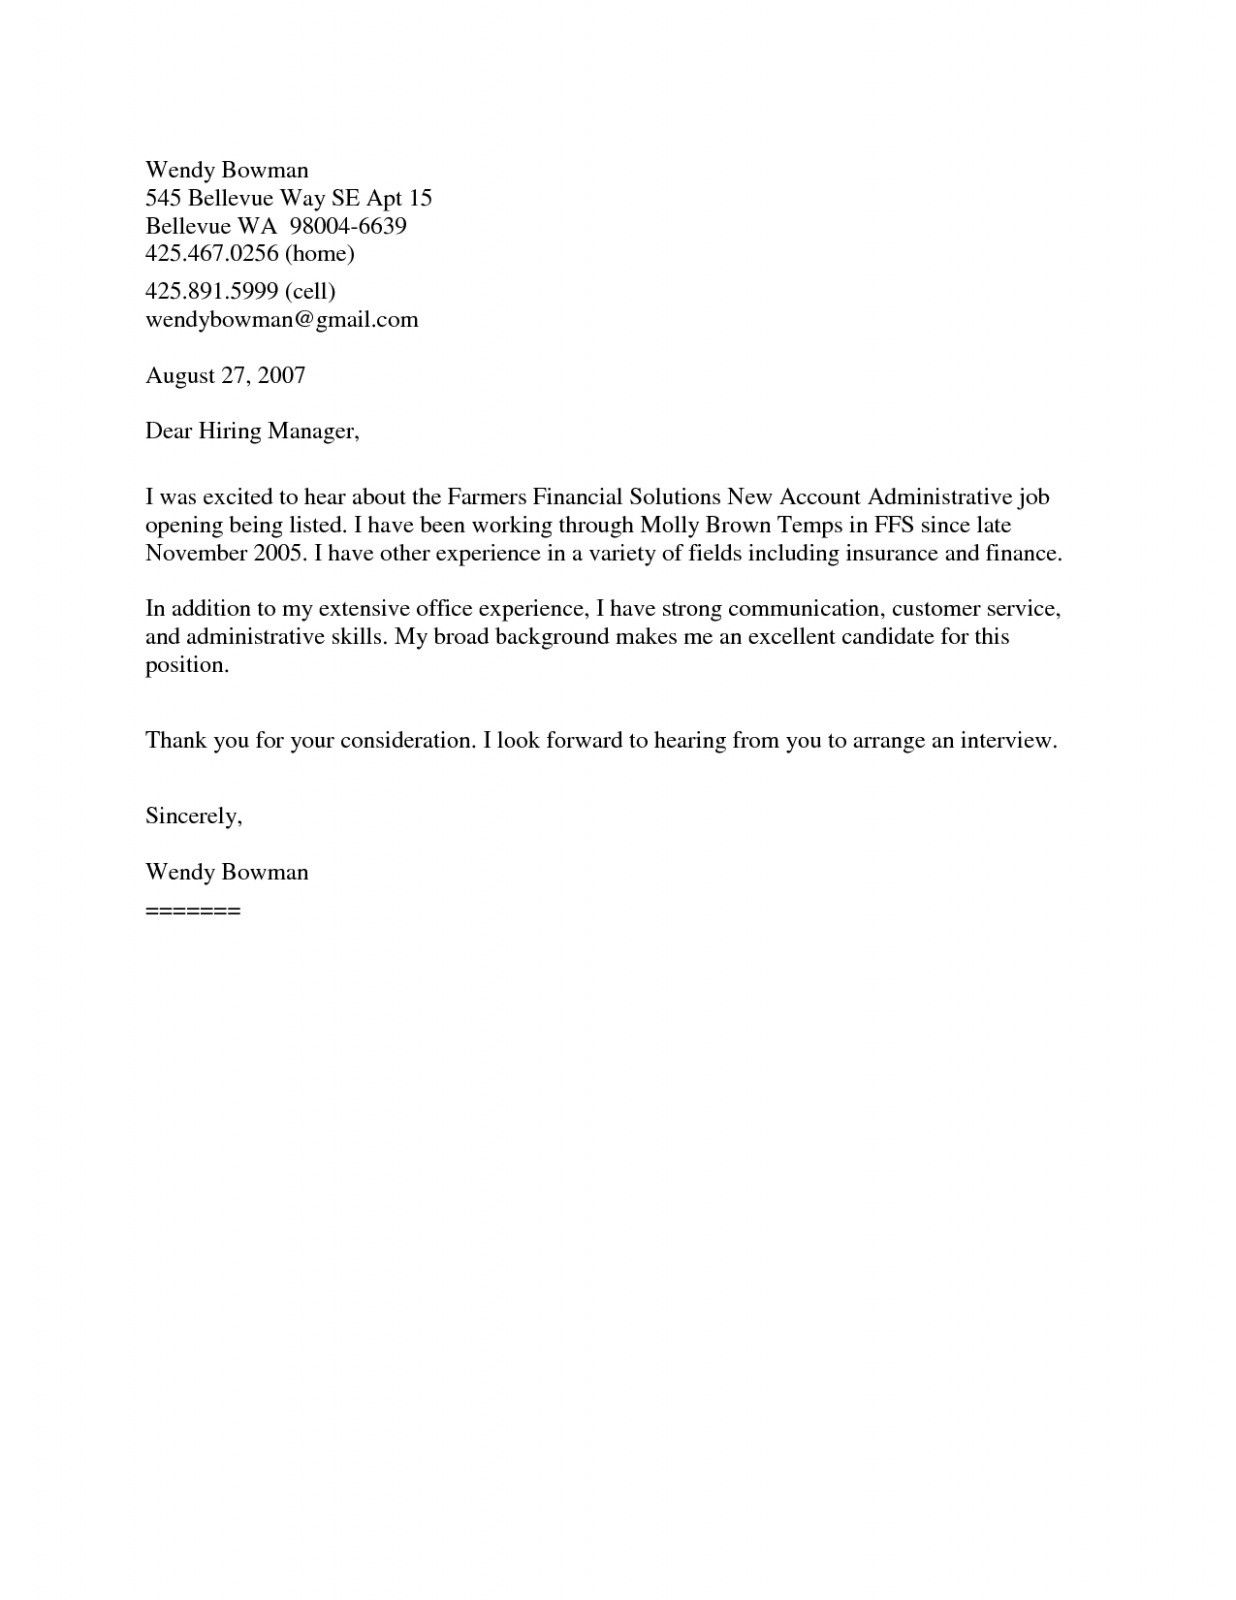 General Resume Cover Letter Template Cover Letter For Resume Resume Cover Letter Examples Resume Cover Letter Template